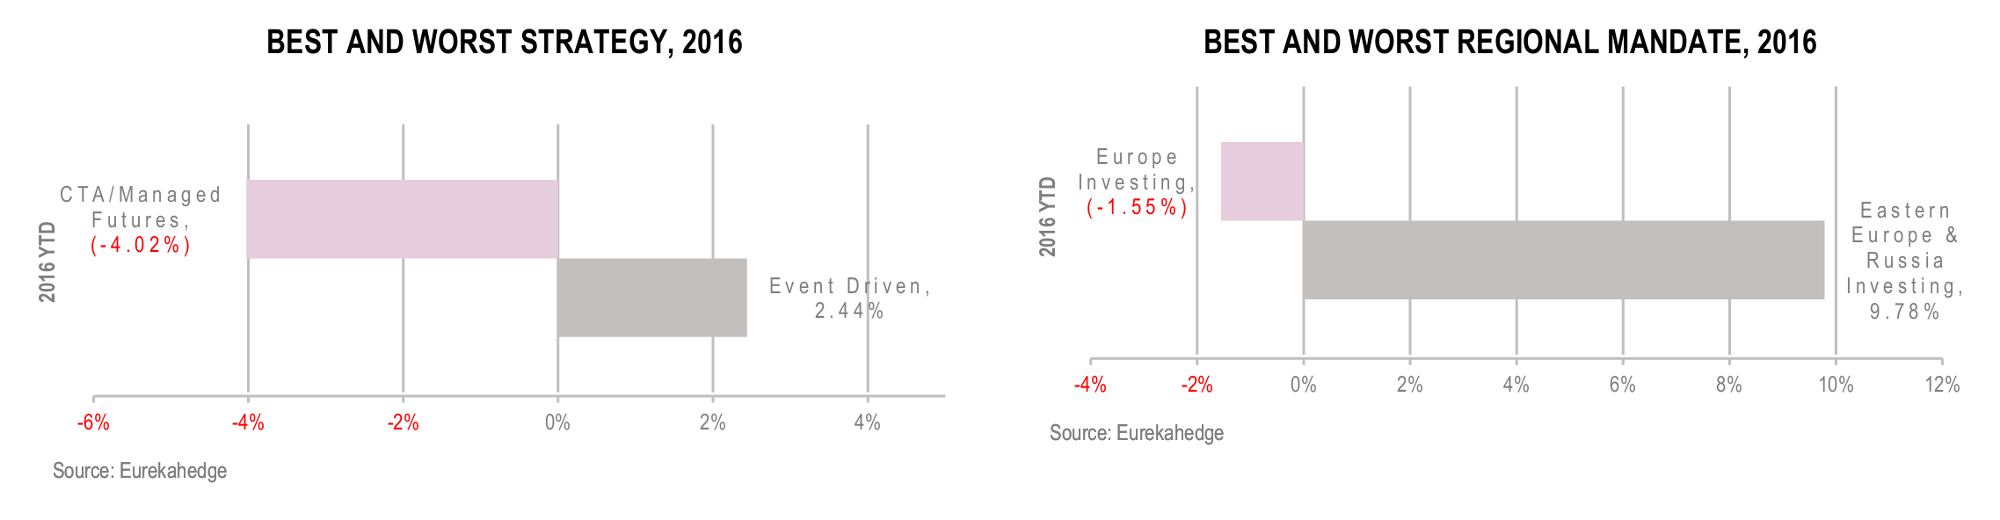 European Hedge Funds Infographic July 2016 - Best and worst strategy and regional mandate